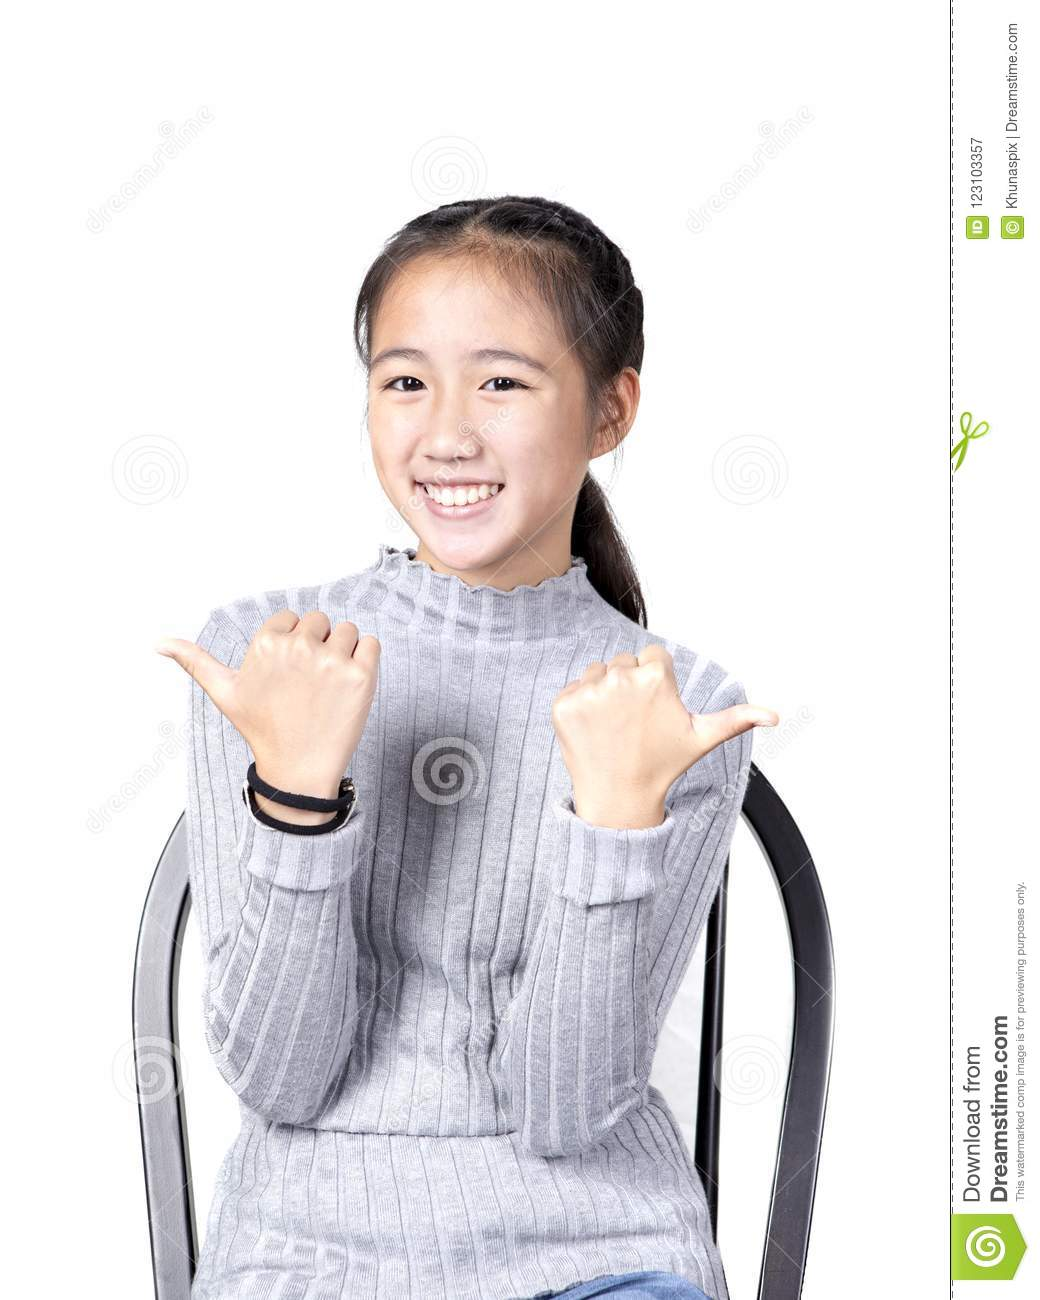 Portrait of cheerful asian teenager toothy smiling face on white